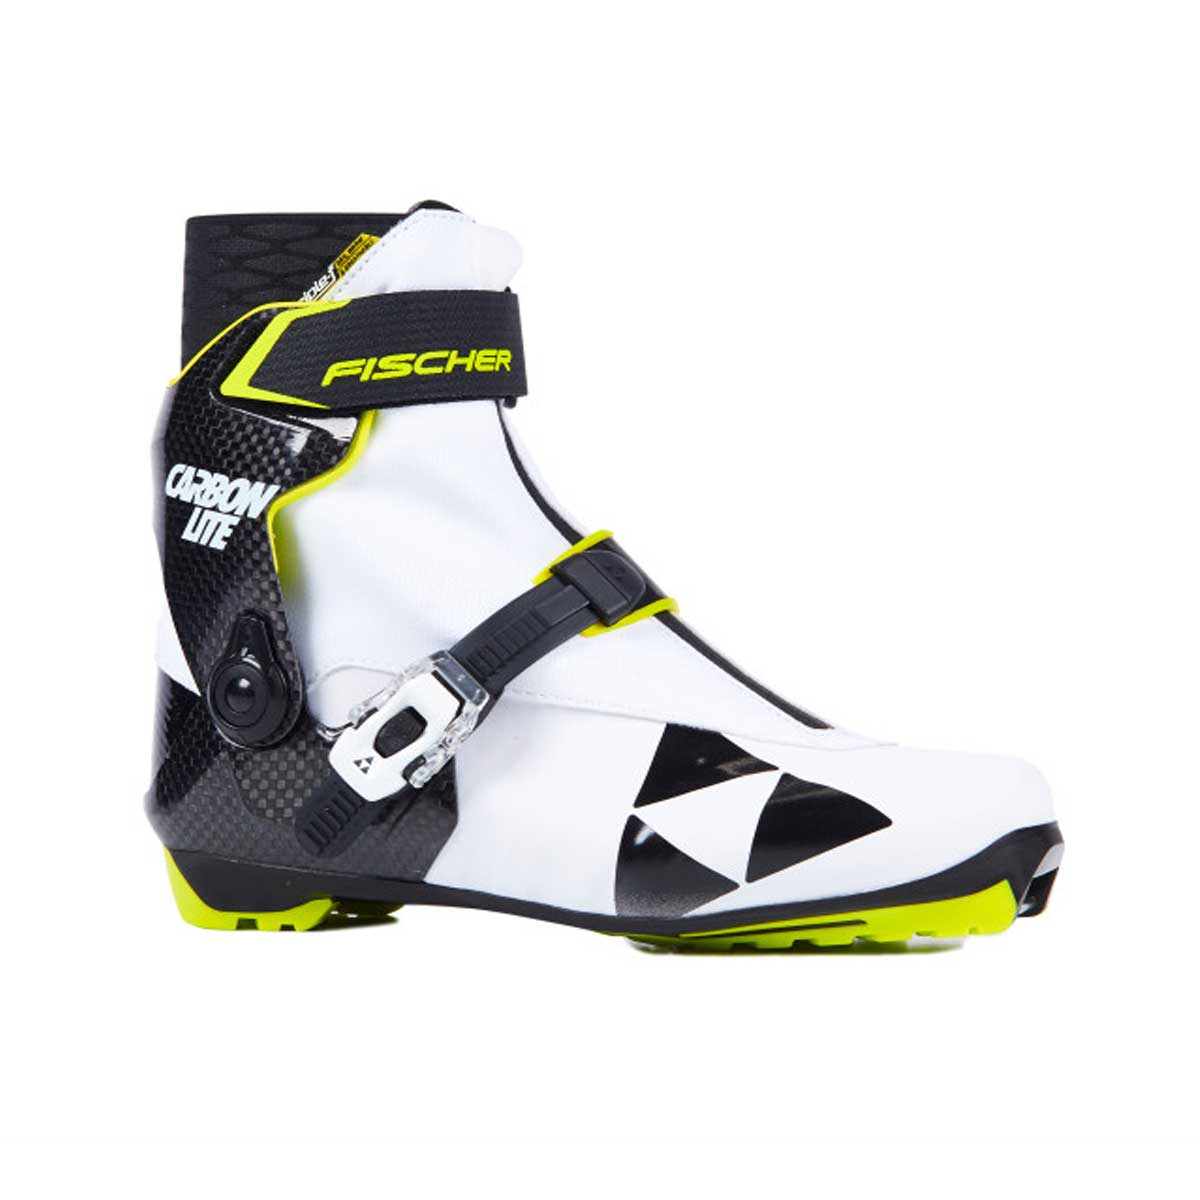 Fischer Women's RCS Carbonlite Skating Boot in White and Black